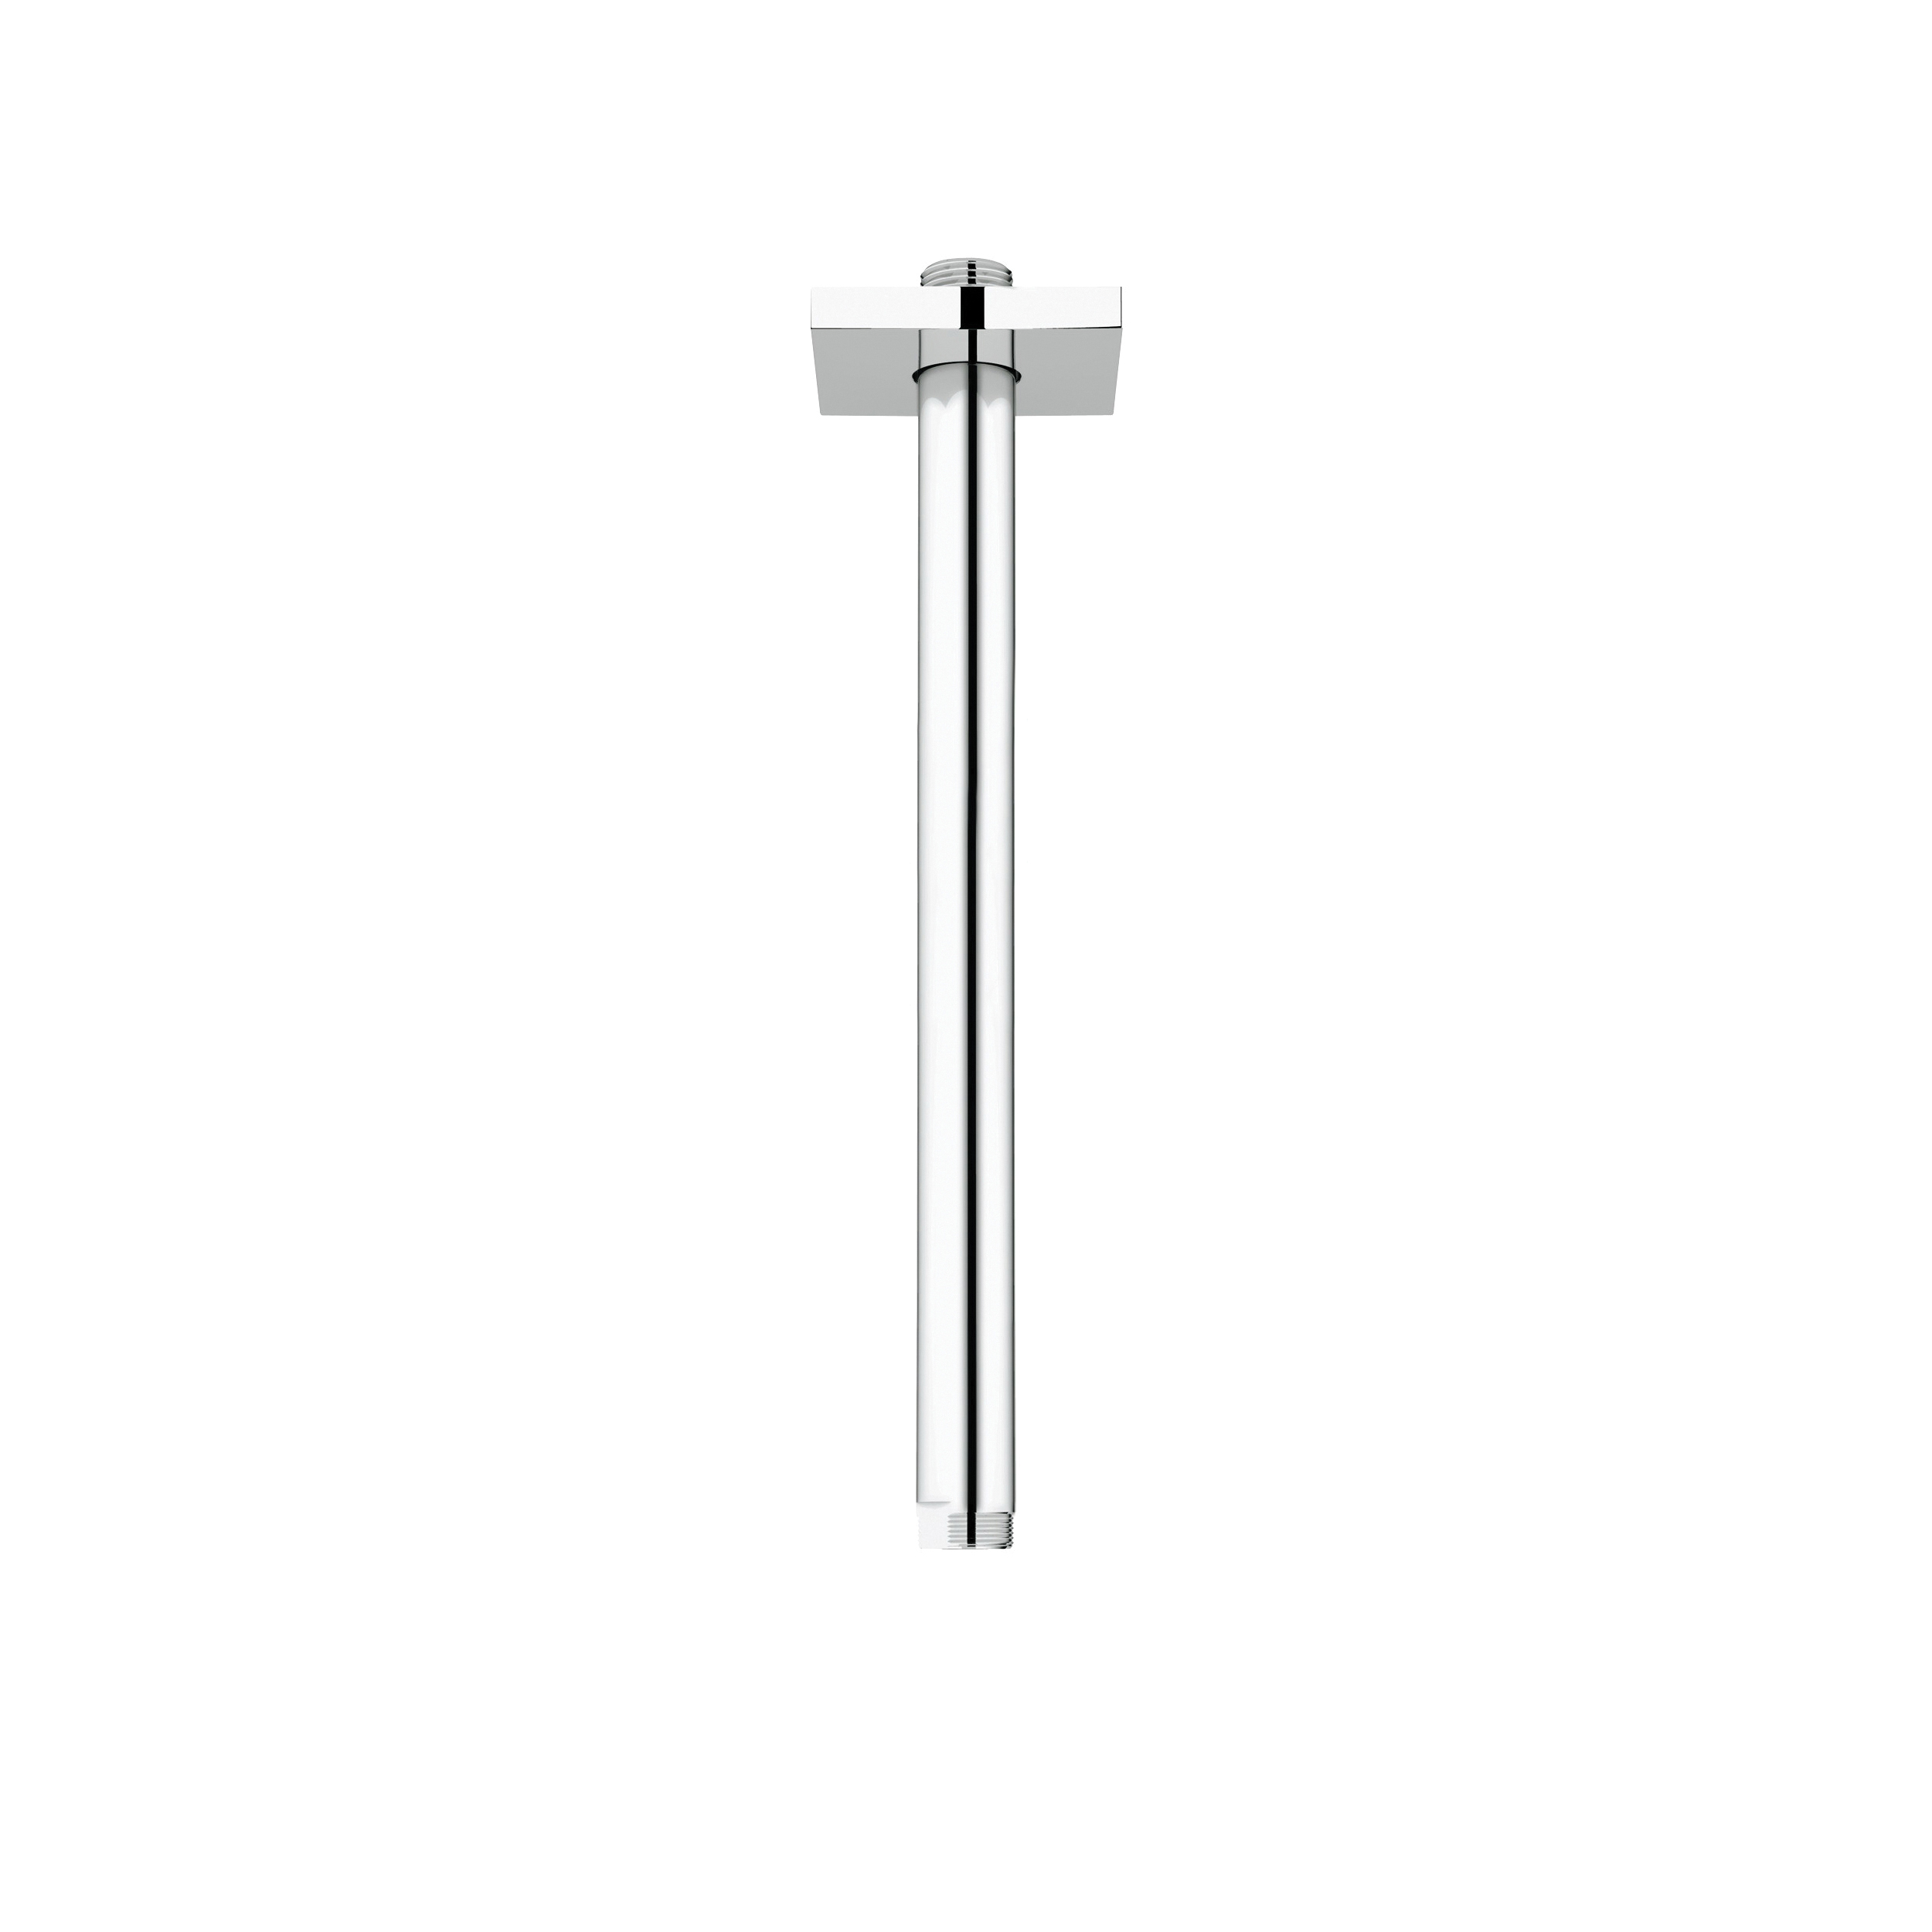 GROHE 27487000 Rainshower® Ceiling Shower Arm With Square Flange, 12 in L, 1/2 in NPT, Import